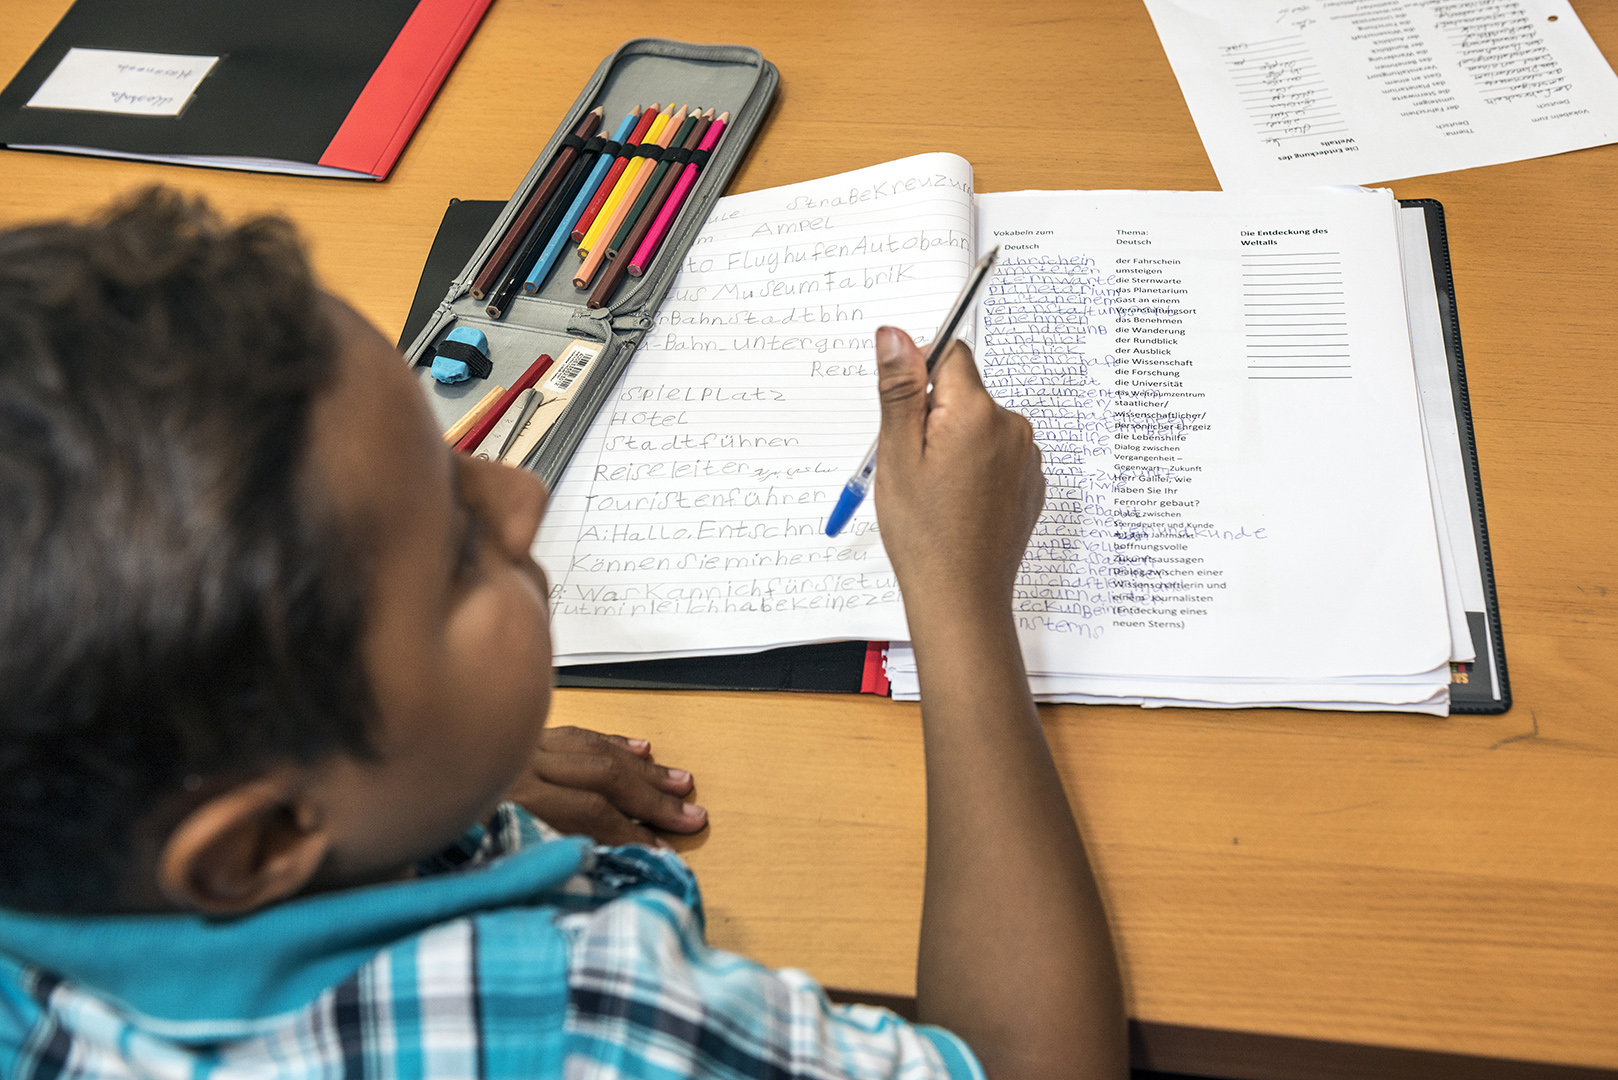 """Mahmoud Jad, age 13, from Syria, participant at the refugee summer school at """"lehrreich"""" in Berlin-Wilmersdorf. Mahmoud loves reading and writing. The new alphabet is difficult, he says, but playing games makes learning more fun. Germany, Berlin, 29/08/2016"""